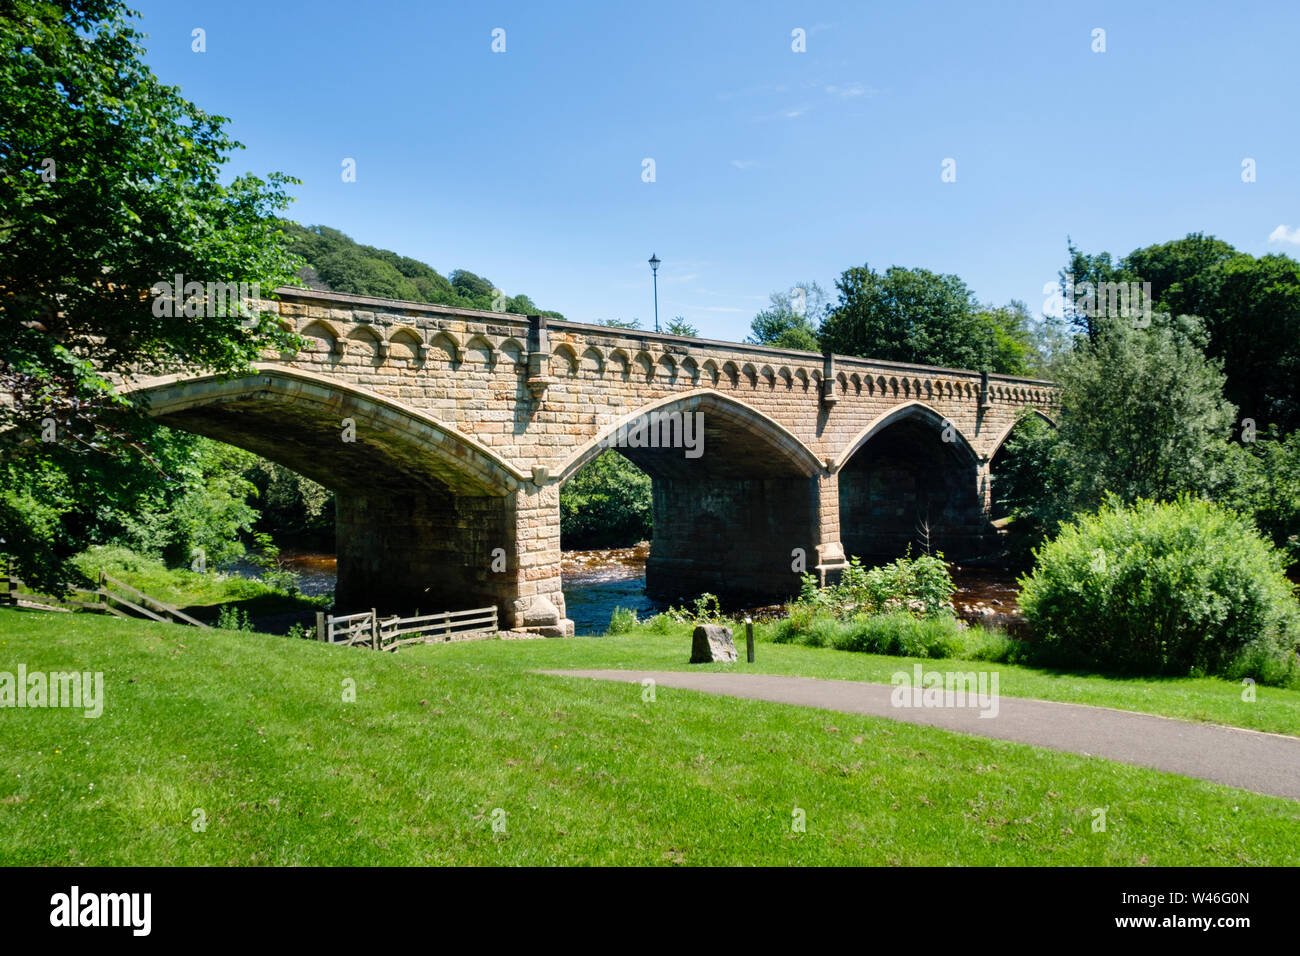 Mercury Bridge the Old Bridge over the River Swale Richmond, North Yorkshire Stock Photo